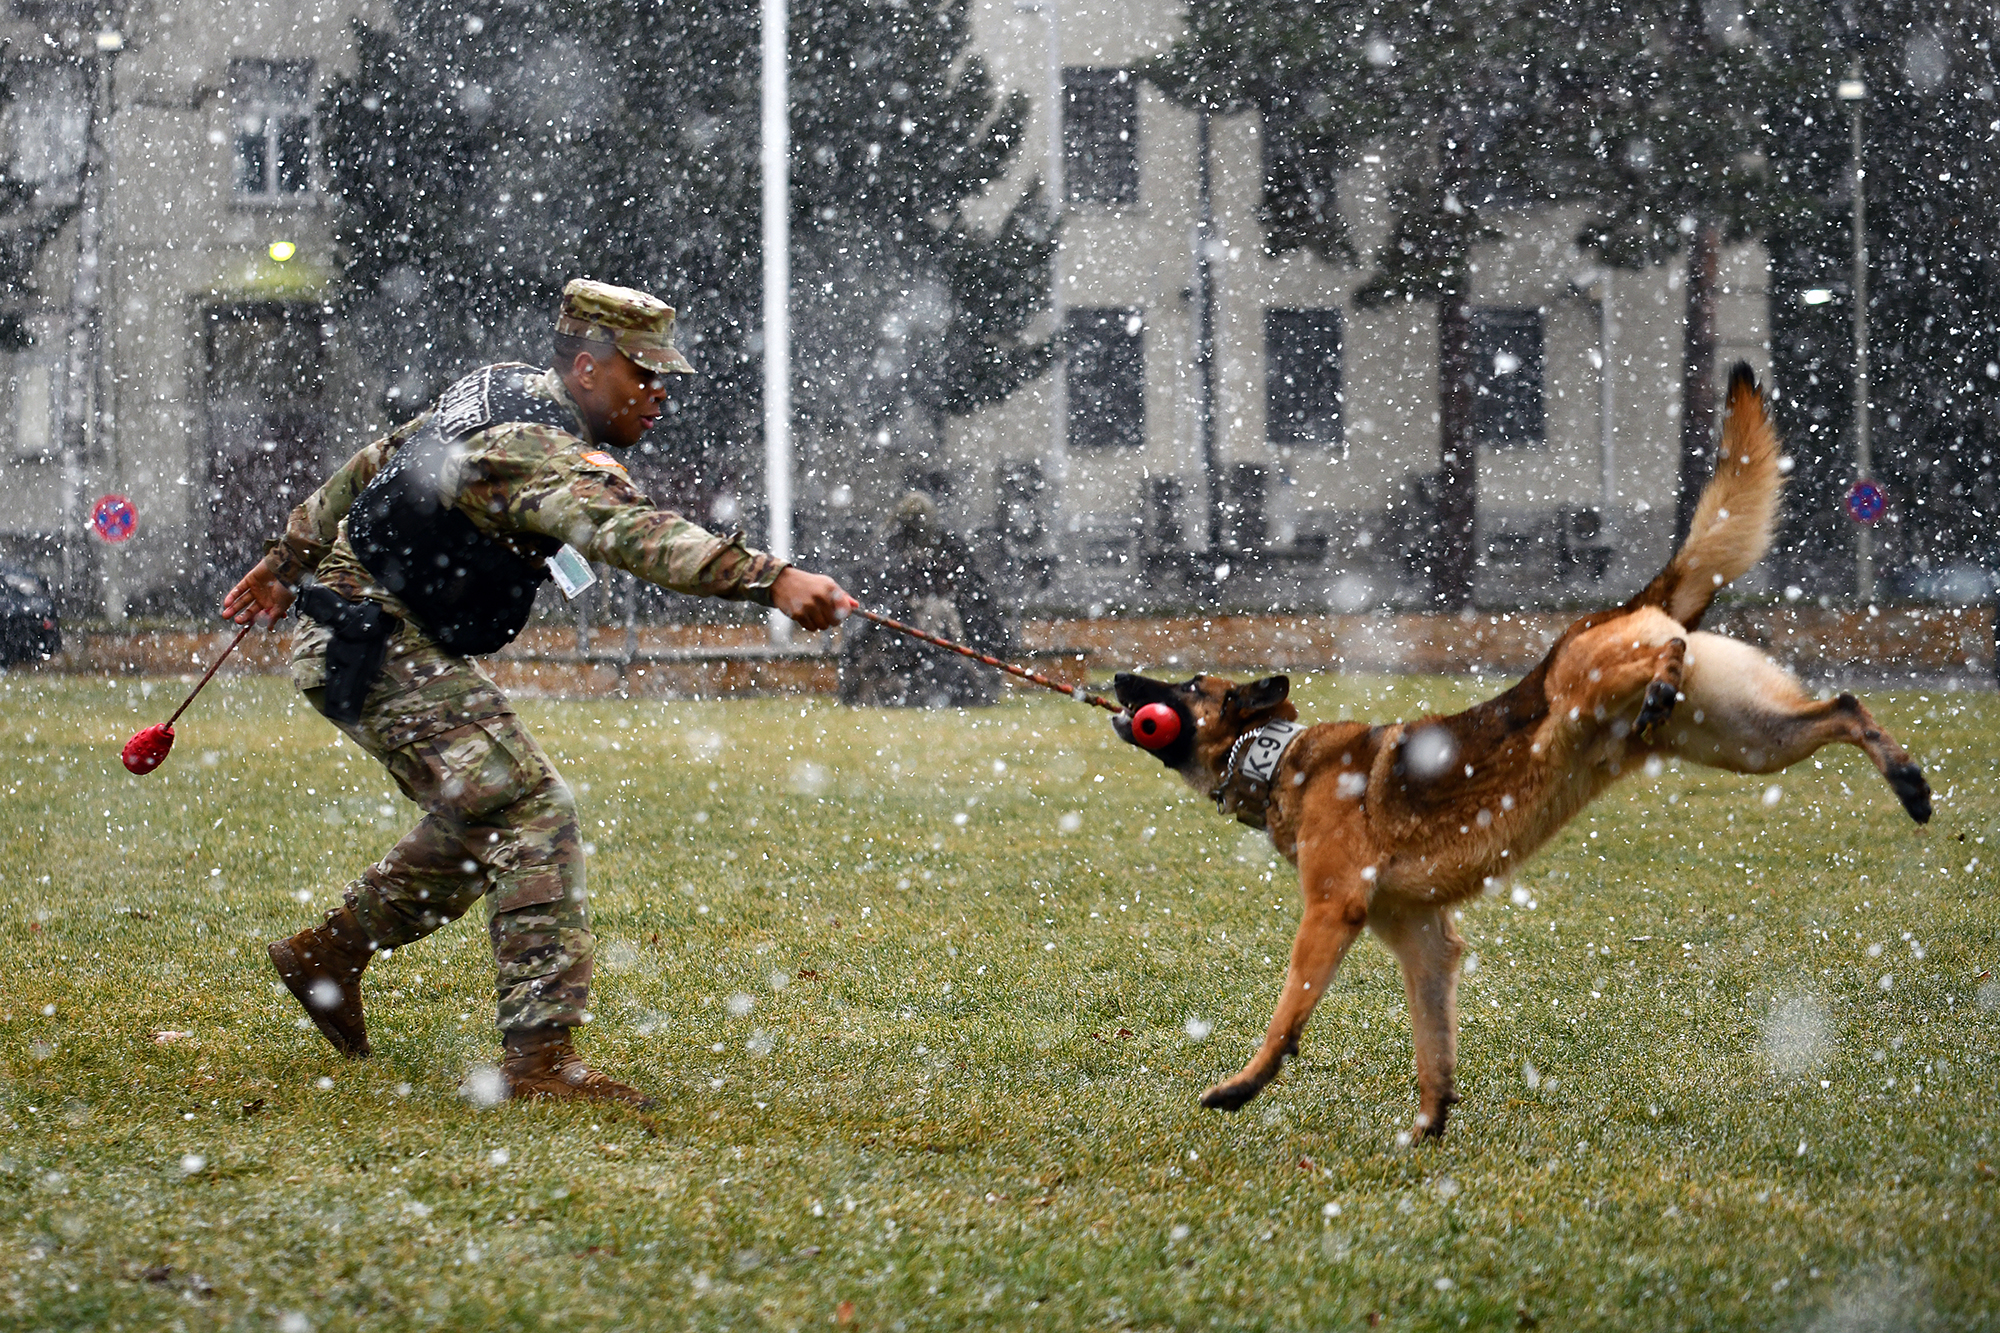 Army Spc. Jermaine Lewis and Astor, a military working dog, conduct off-leash obedience drills Jan. 28, 2020, on Panzer Kaserne, Boeblingen, Germany, Jan. 28, 2020. (Jason Johnston/Army)